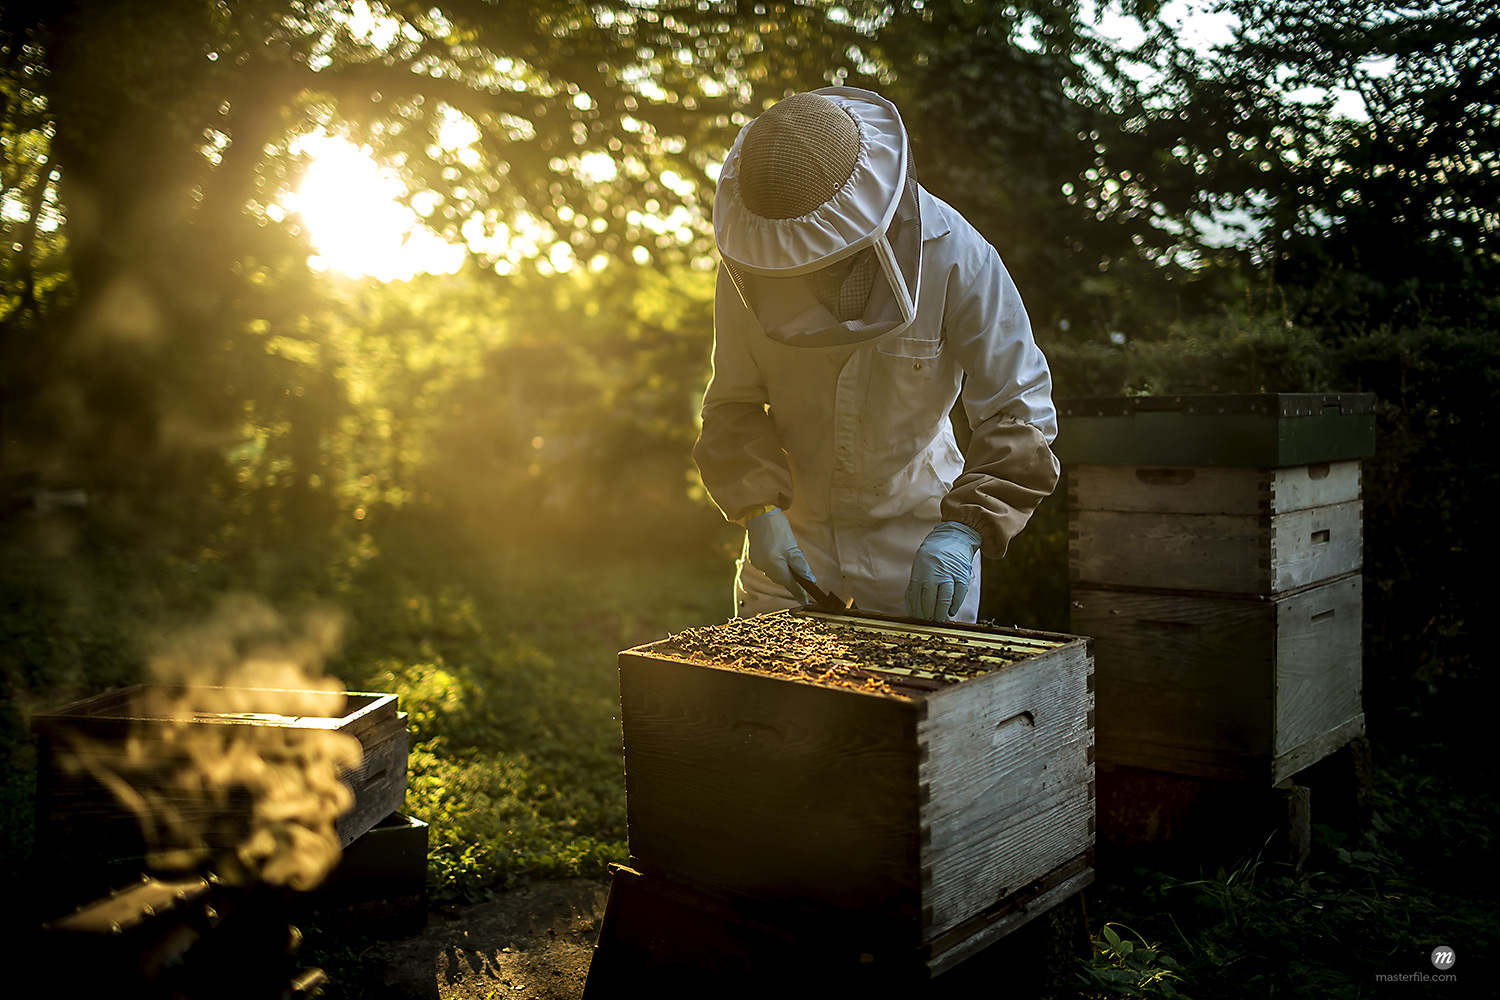 Beekeeper wearing a beekeeping suit with mesh face mask, inspecting an open beehive. Preparing to collect honey  © Masterfile